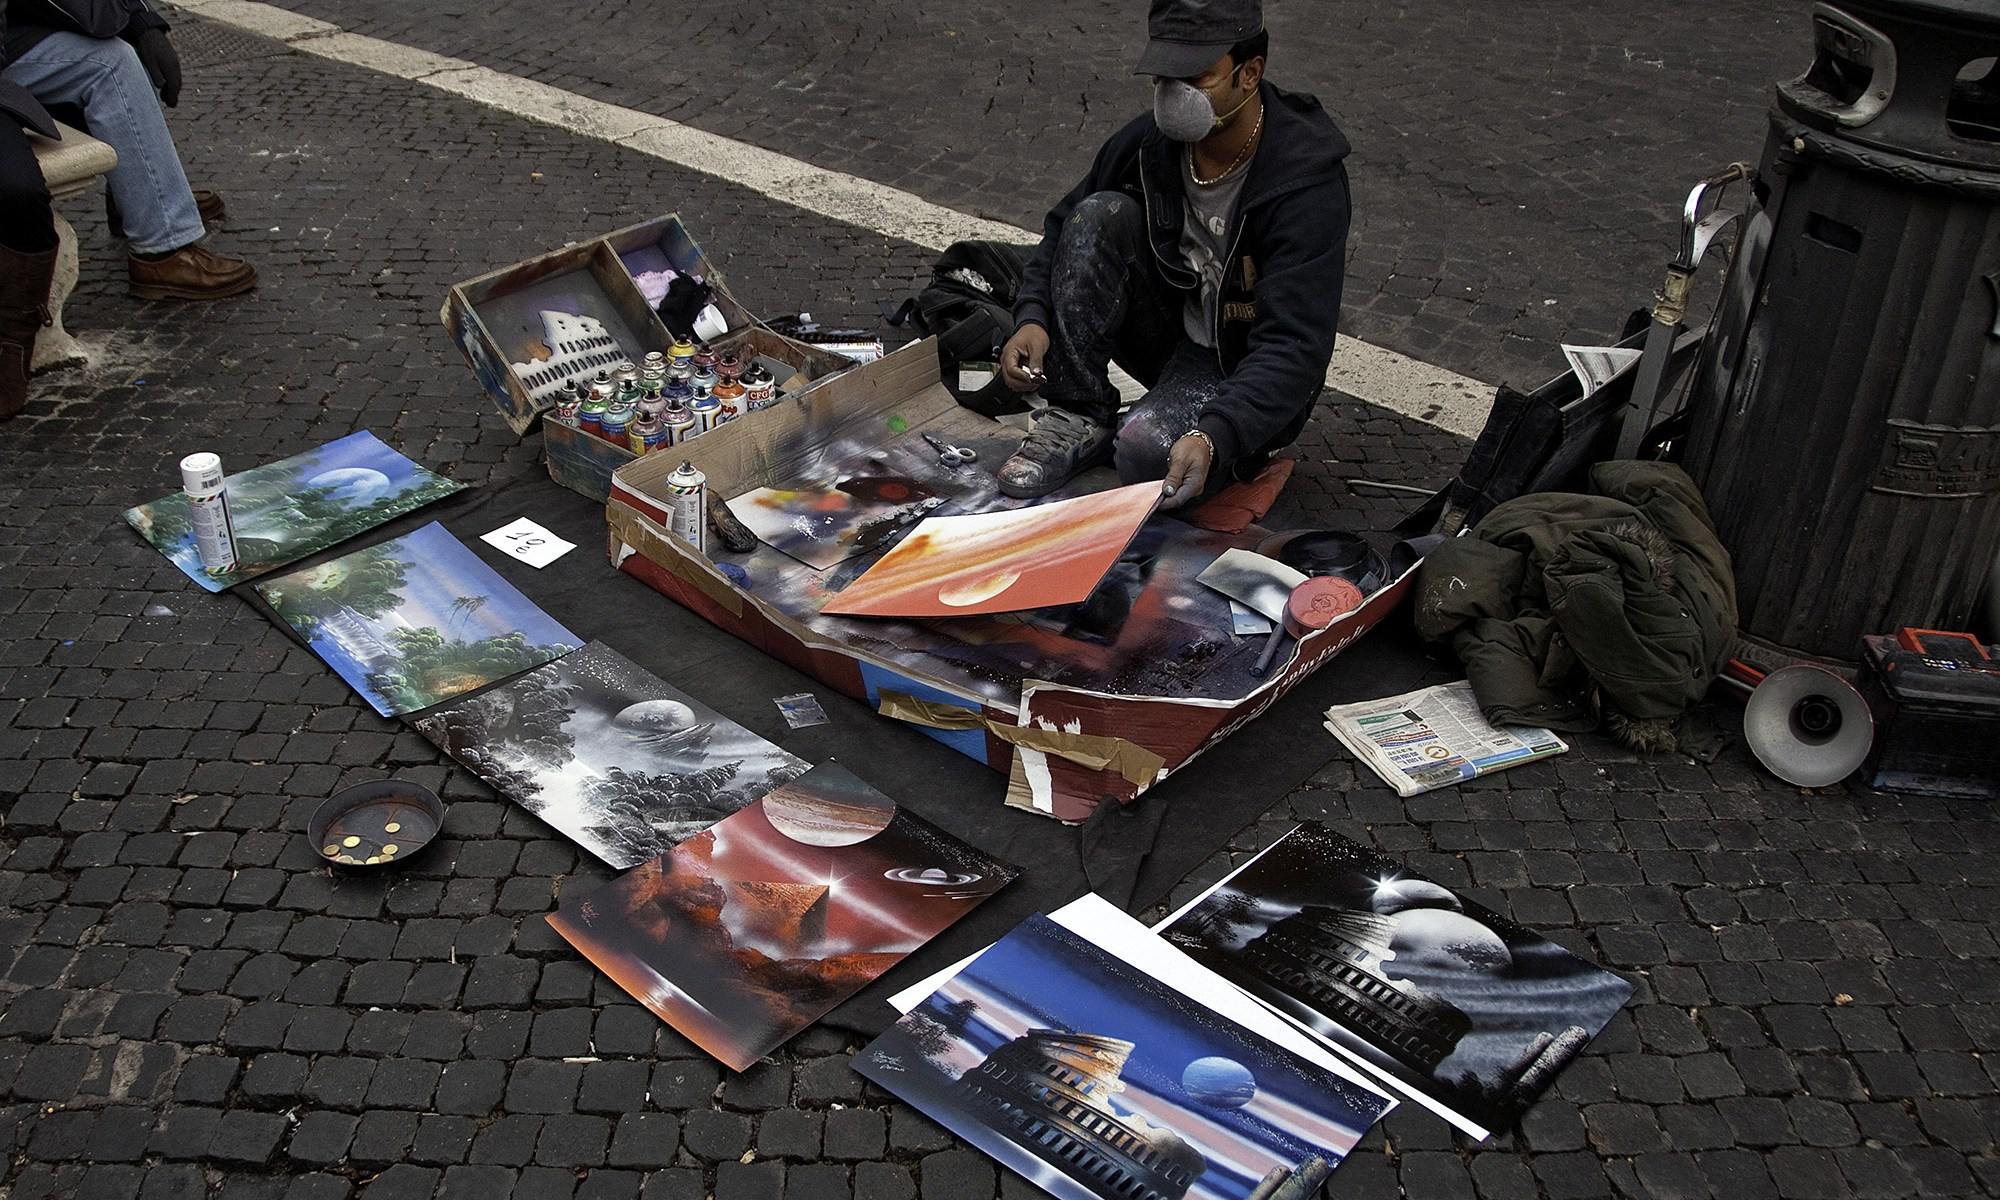 Spray Paint Artist in the Street